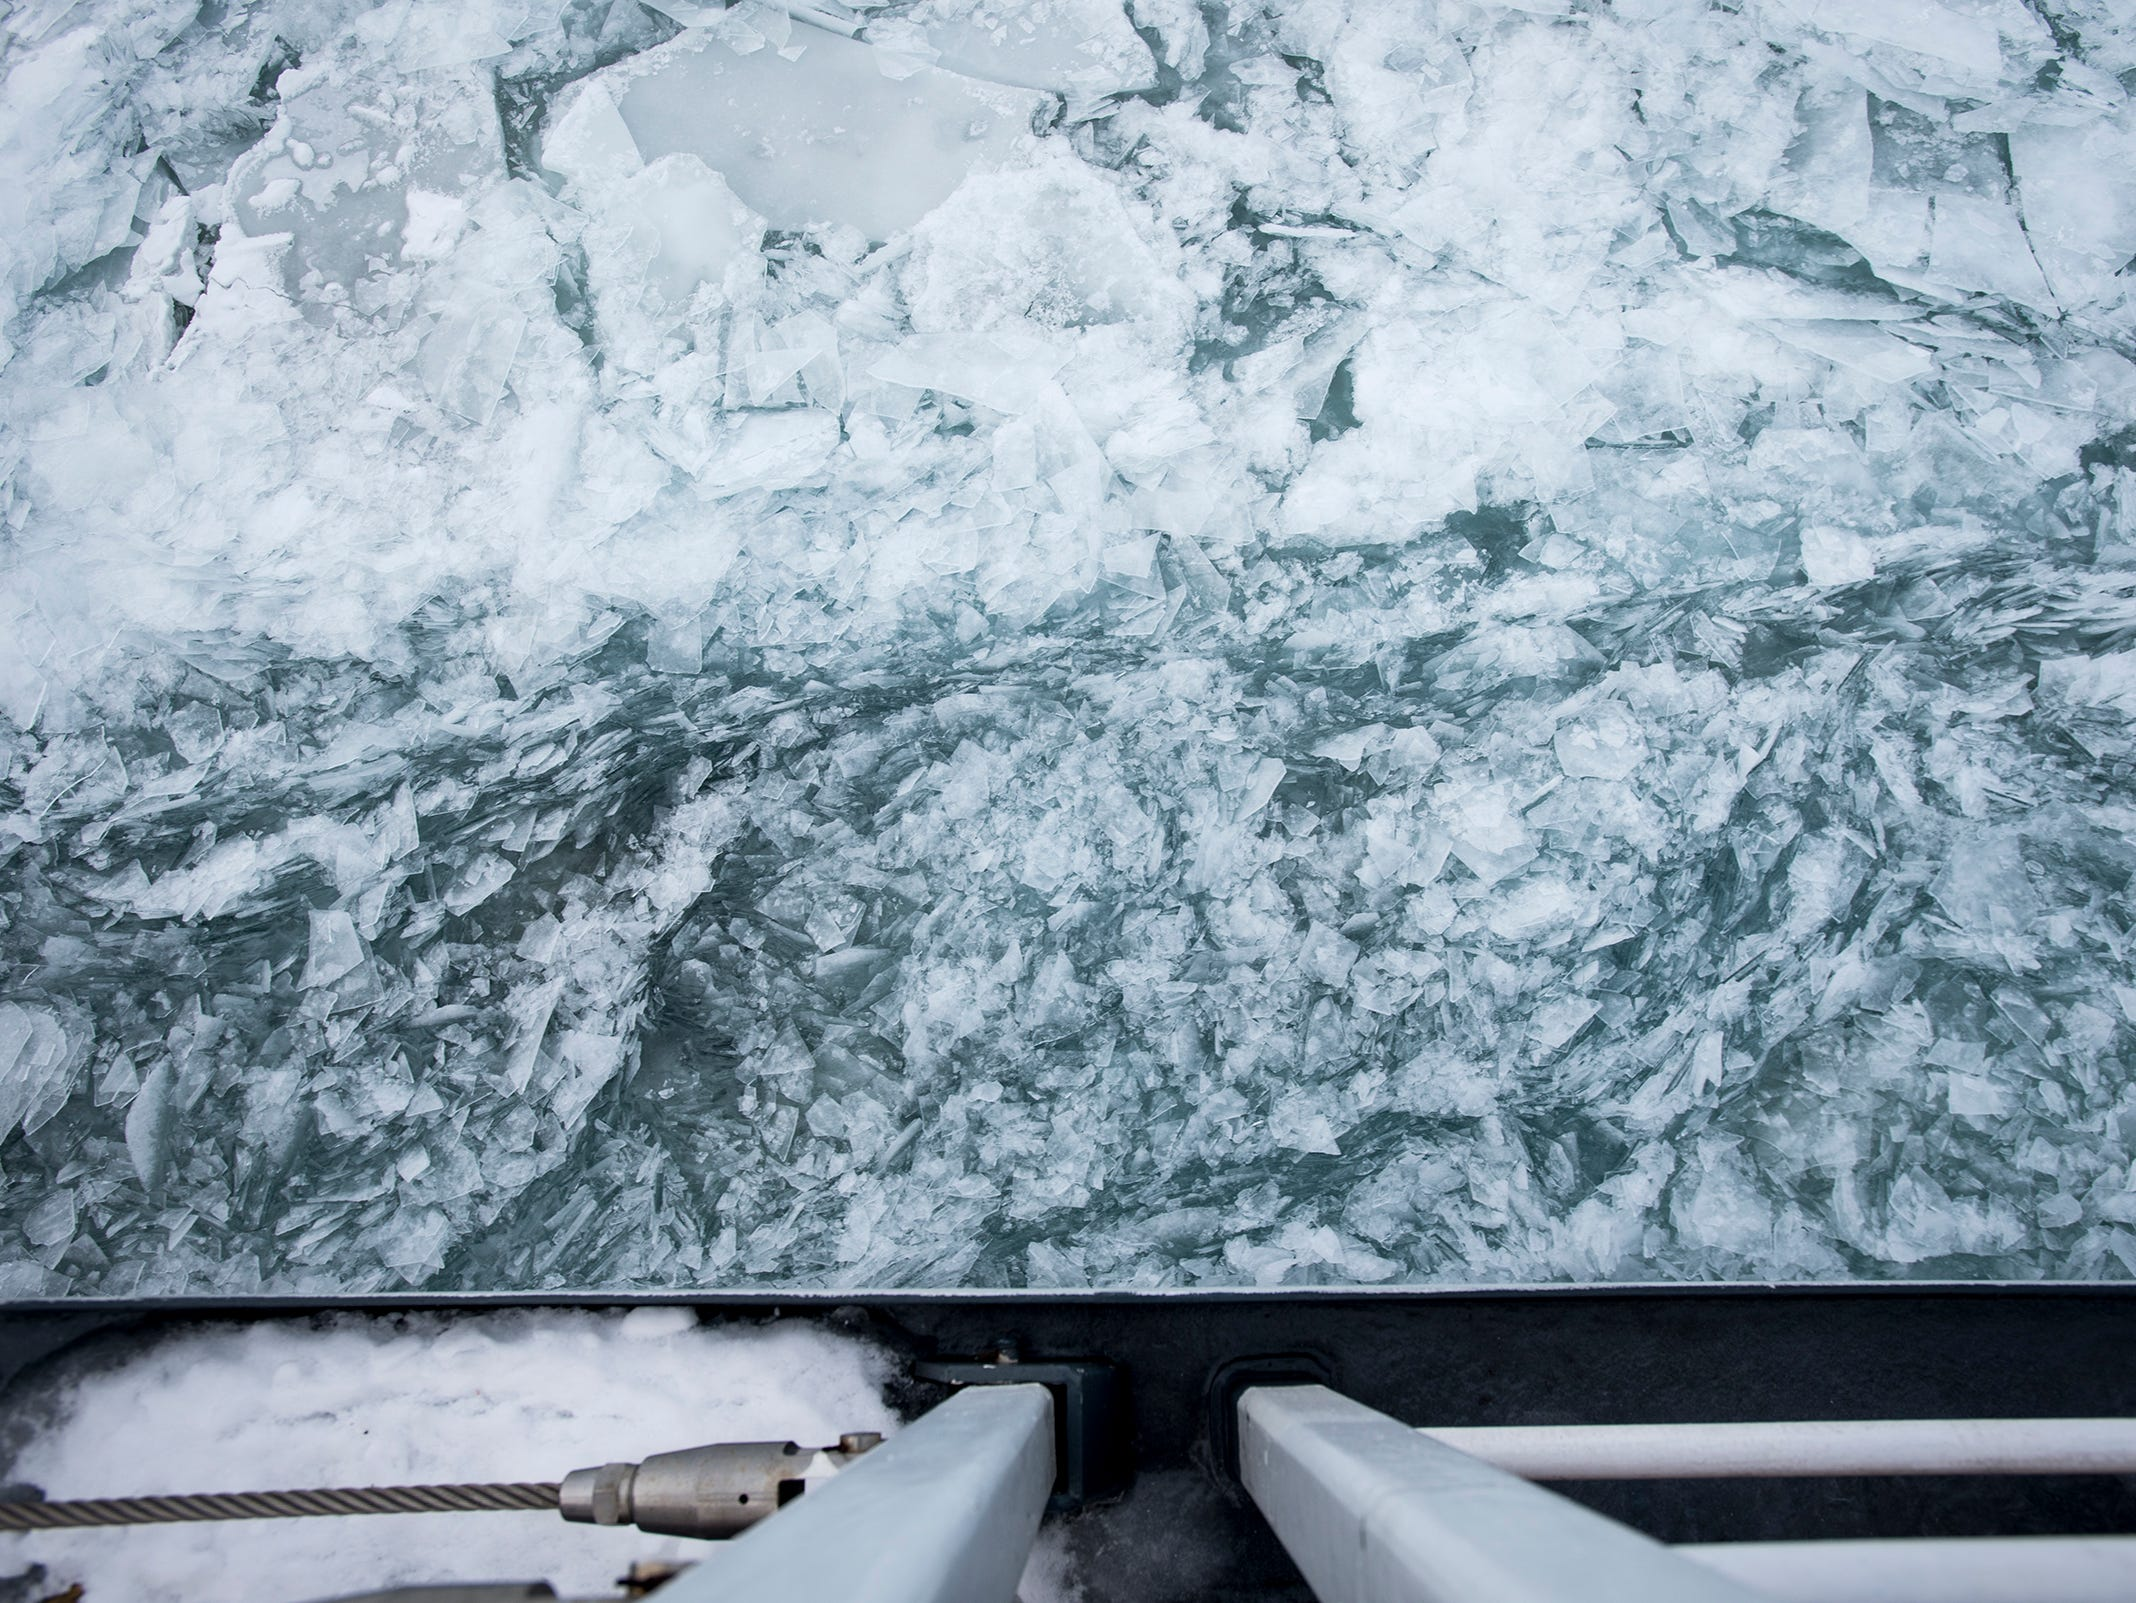 As the USCGC Hollyhock heads further south on the St. Clair River, more of the river's surface becomes hidden beneath ice. Chunks of ice that were broken apart by the freighter float past the ship as it presses onward.